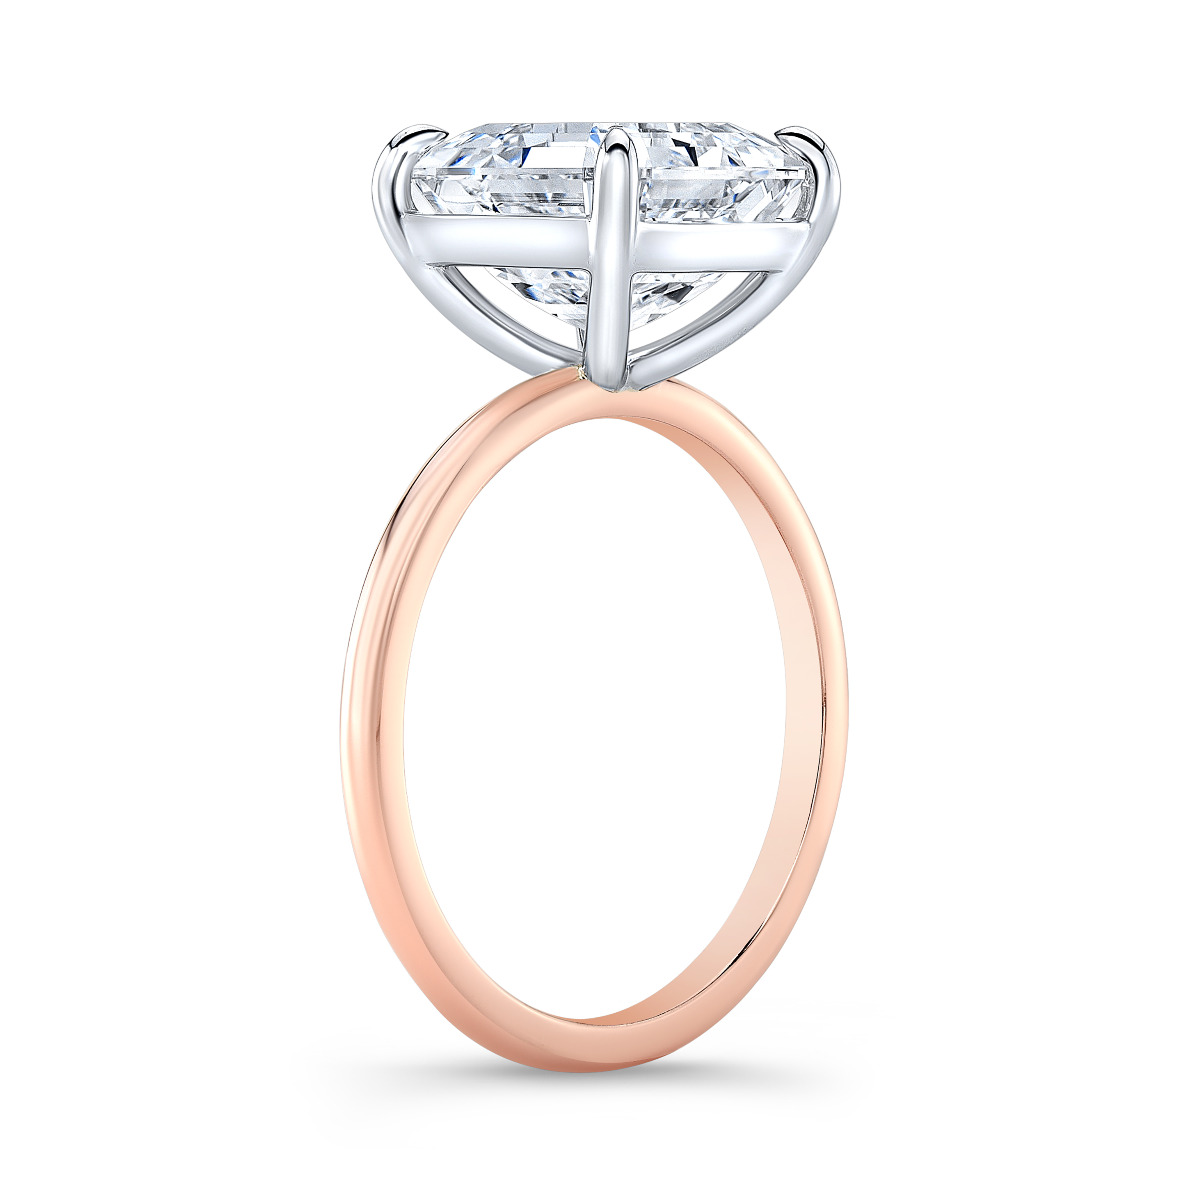 Ultra Thin Solitaire Engagement Ring